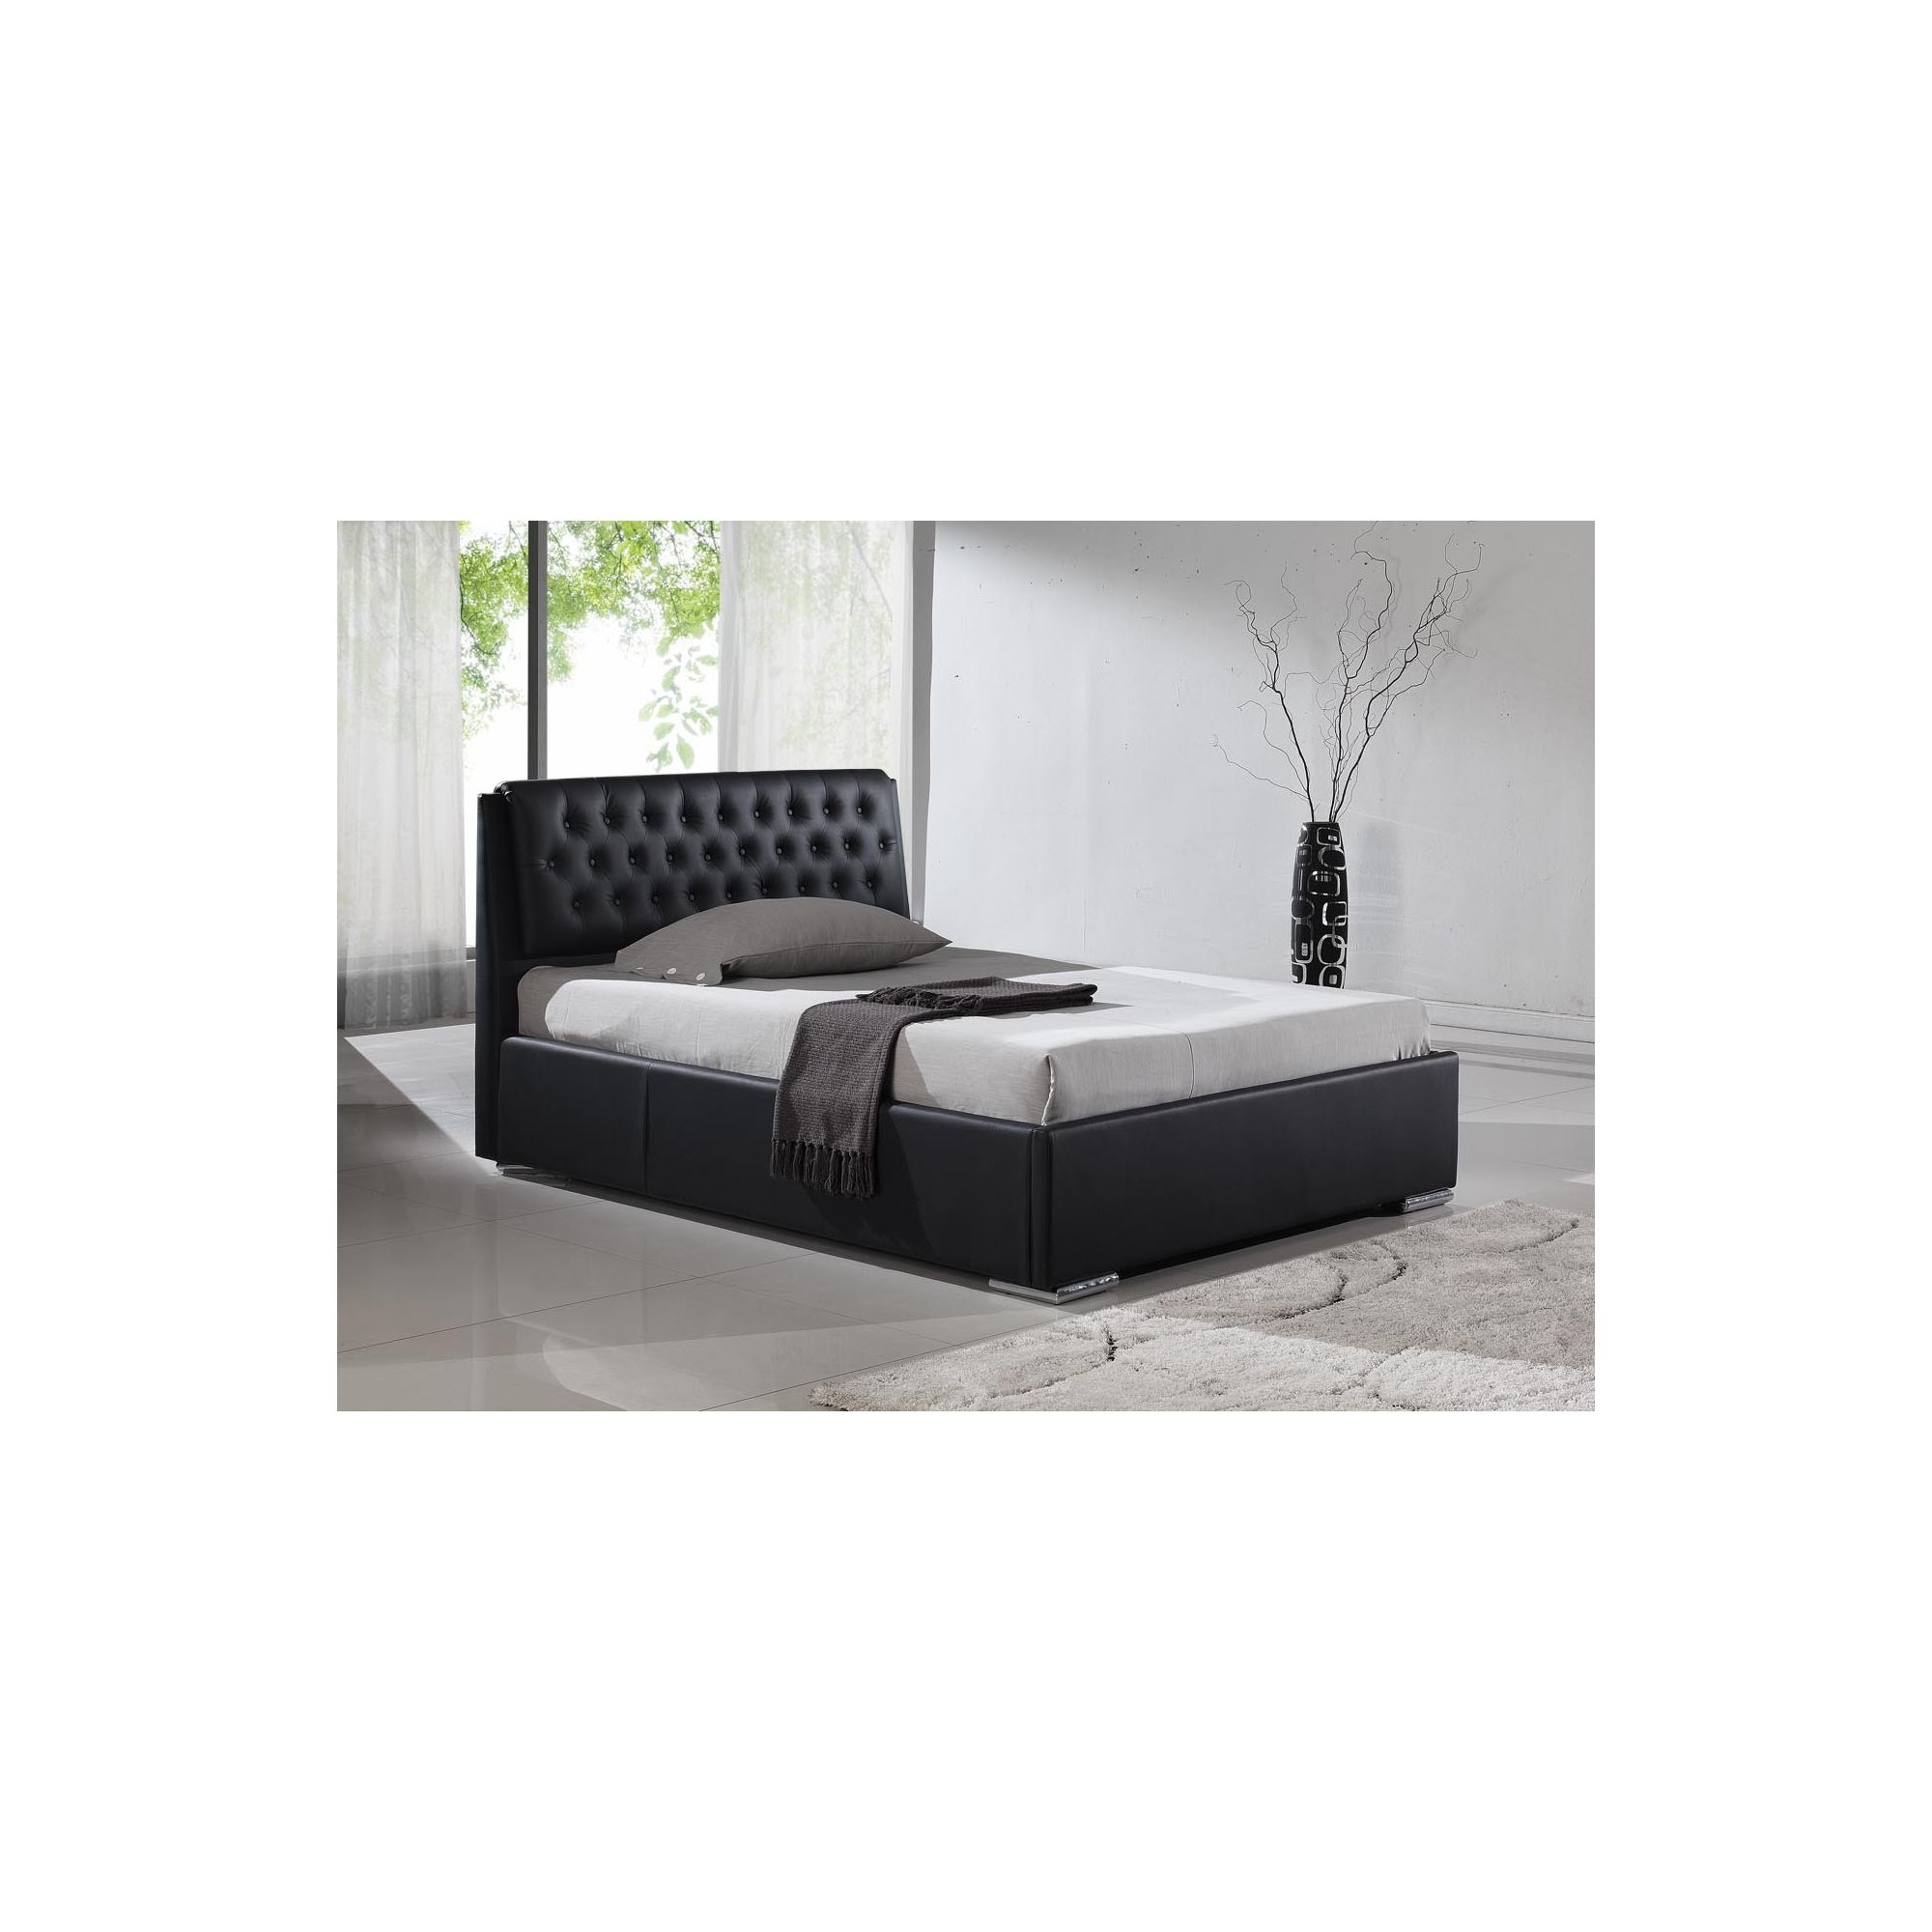 Interiors 2 suit Naples Bedframe - Black - King at Tesco Direct